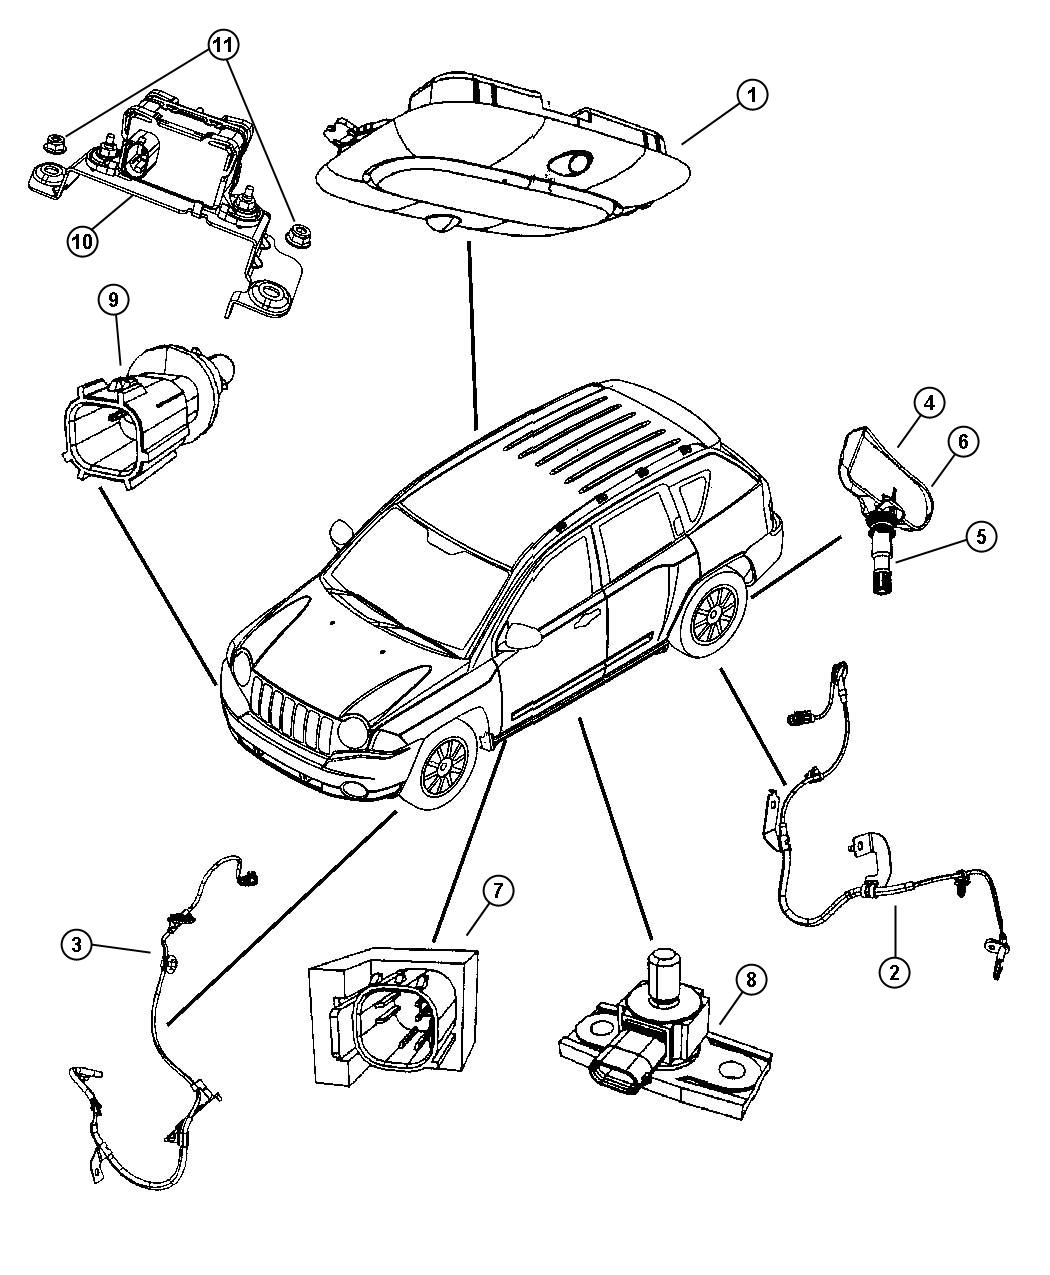 Jeep Compass Sensor. Dynamics. Lateral acceleration and